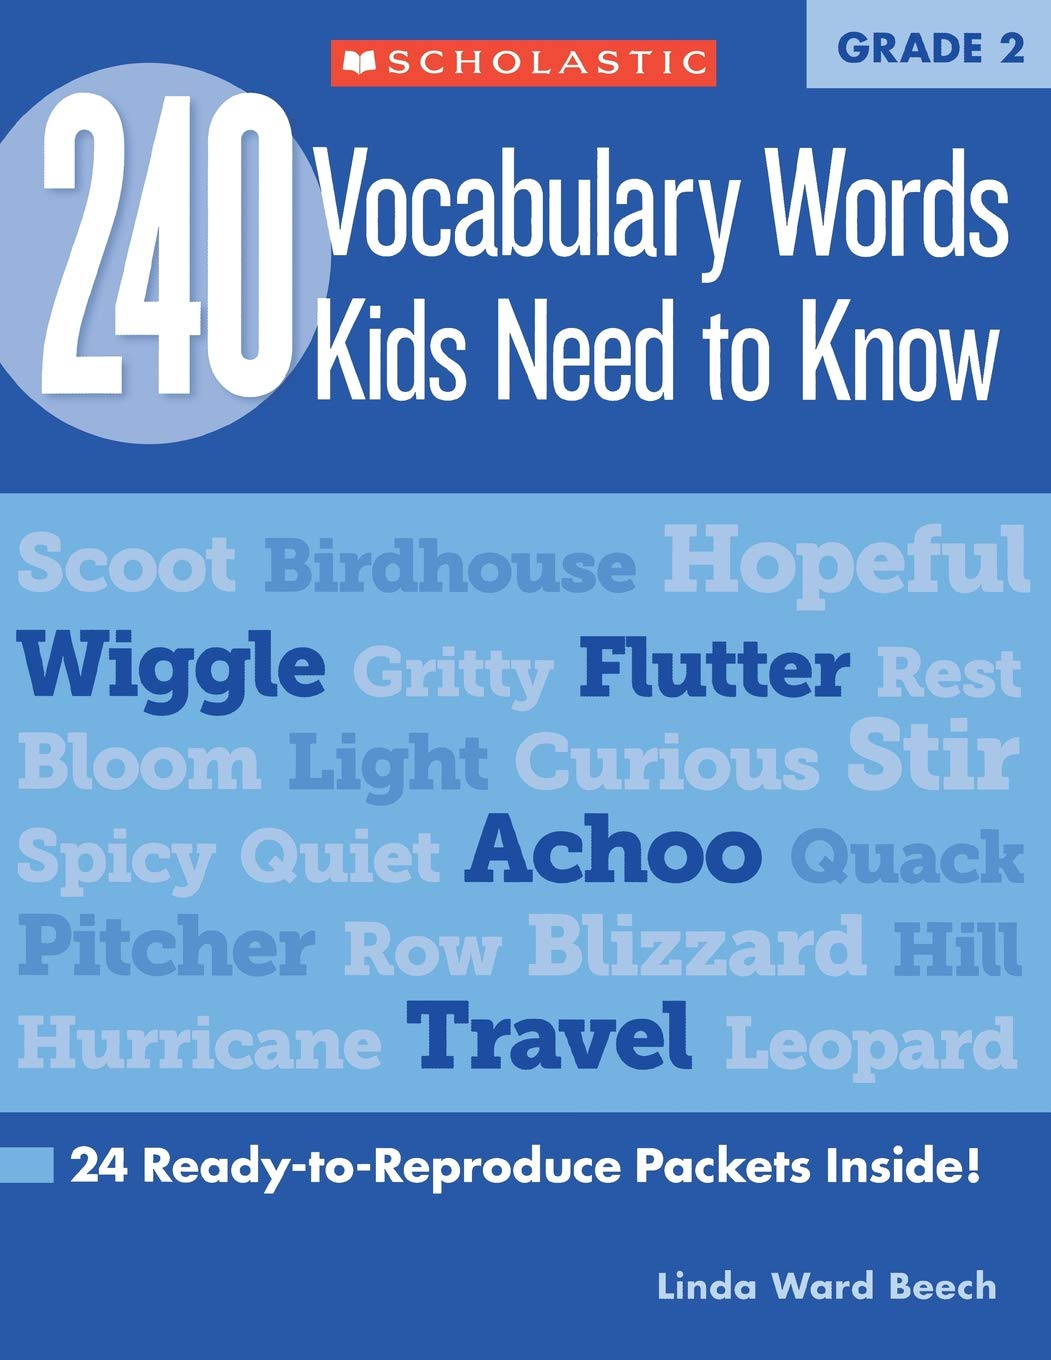 240 Vocabulary Words Kids Need to Know: Grade 2: 24 Ready-to